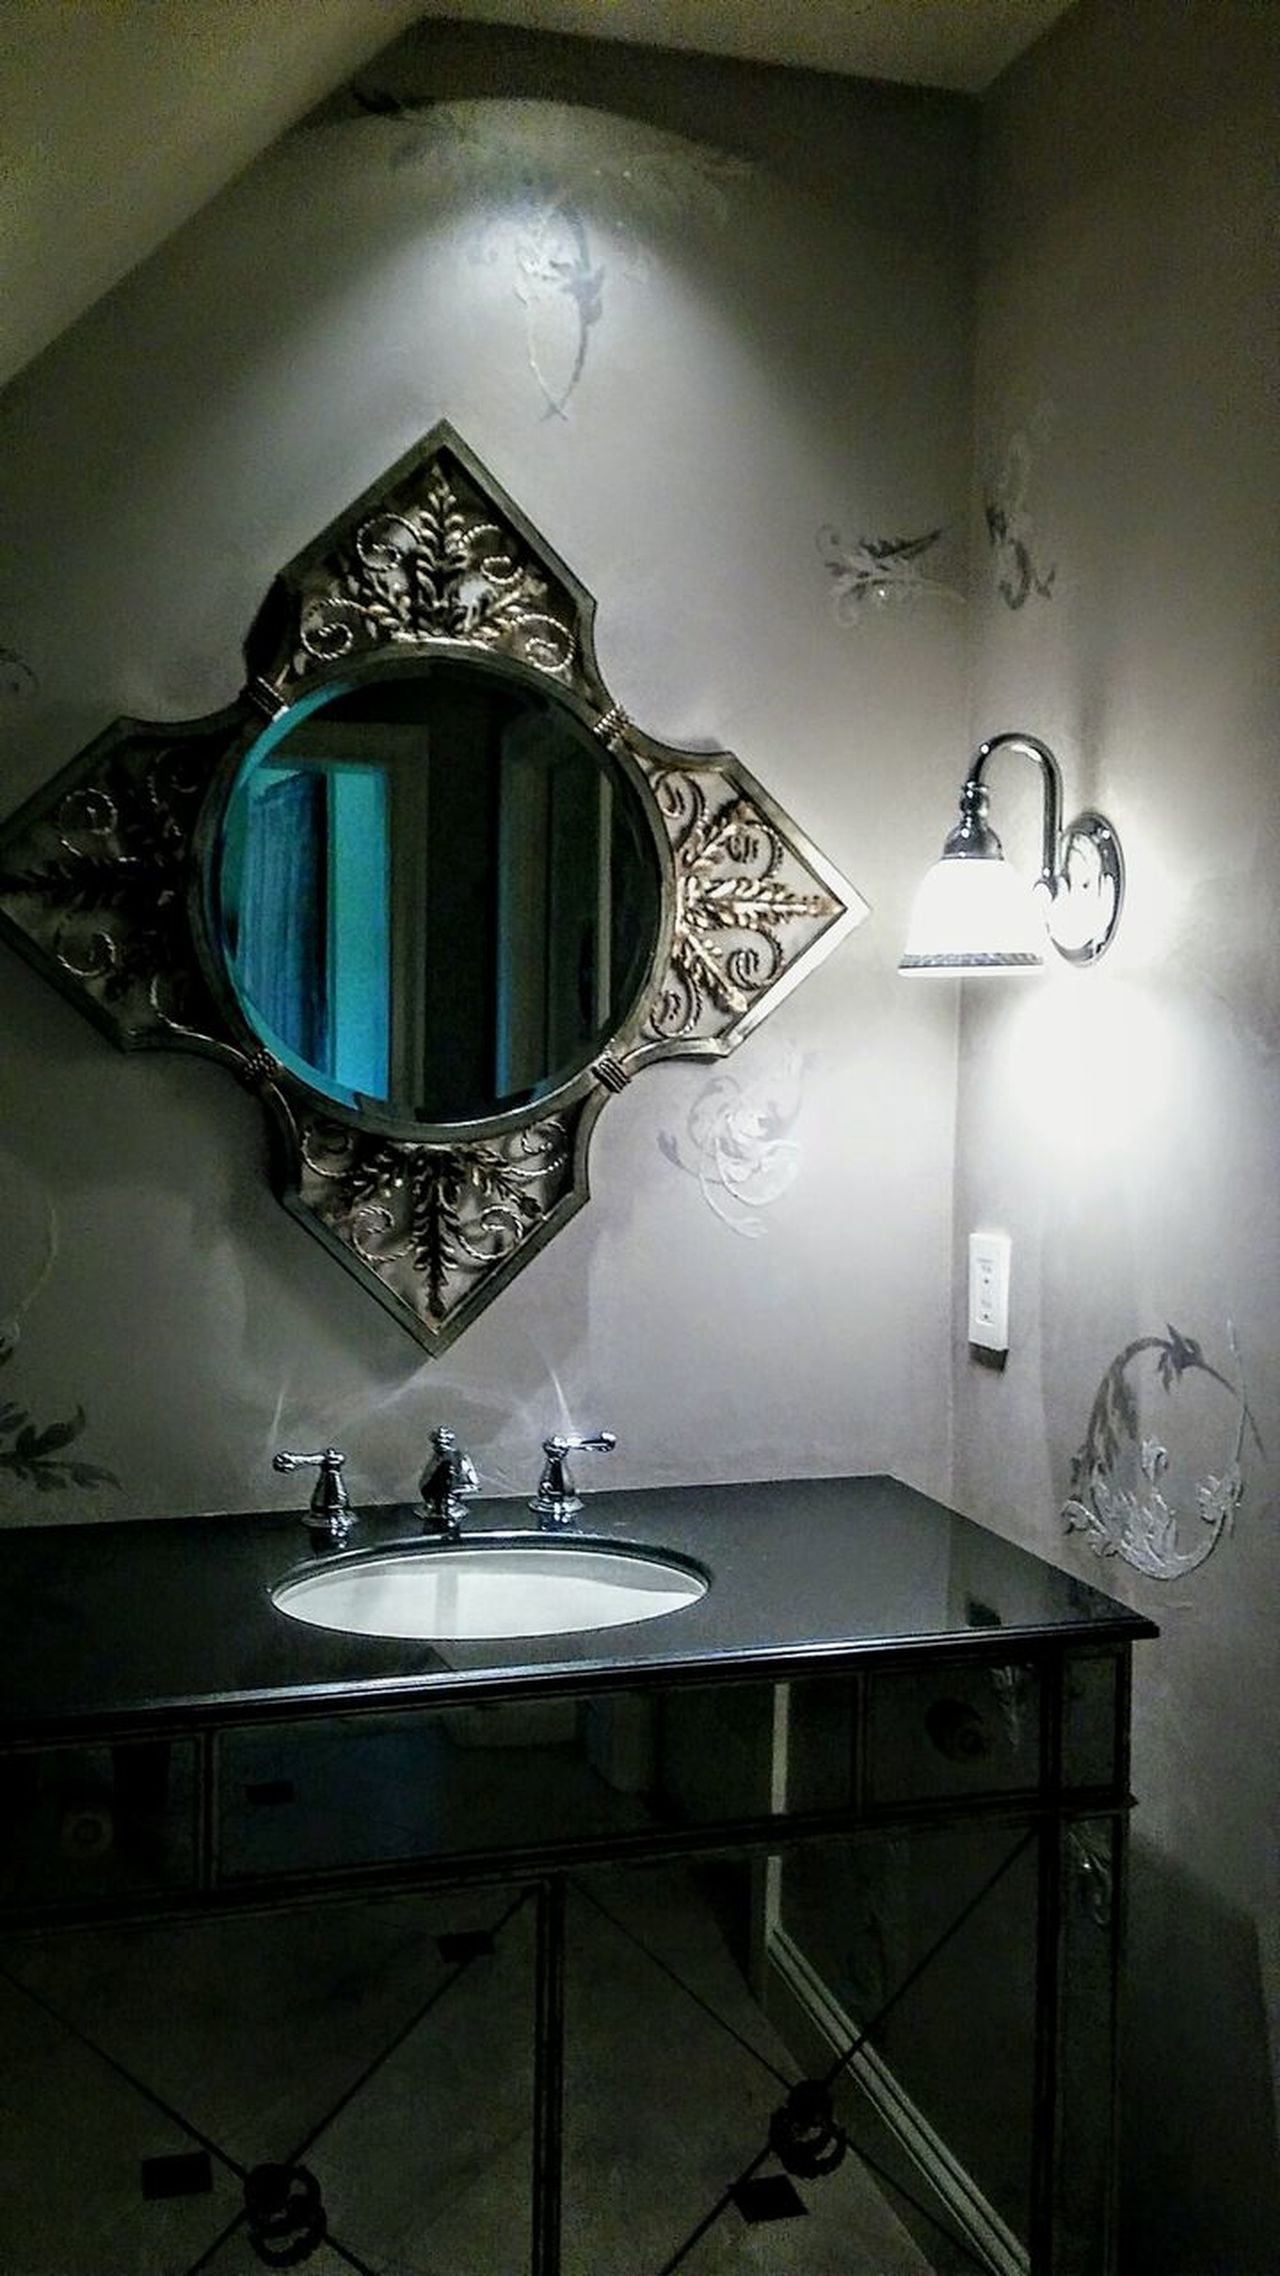 No People Architecture EyeEm Gallery Irwin Collection Home Showcase Interior Domestic Room Beautiful Home Bathroom Picture Mirrored Image Sink And Counter